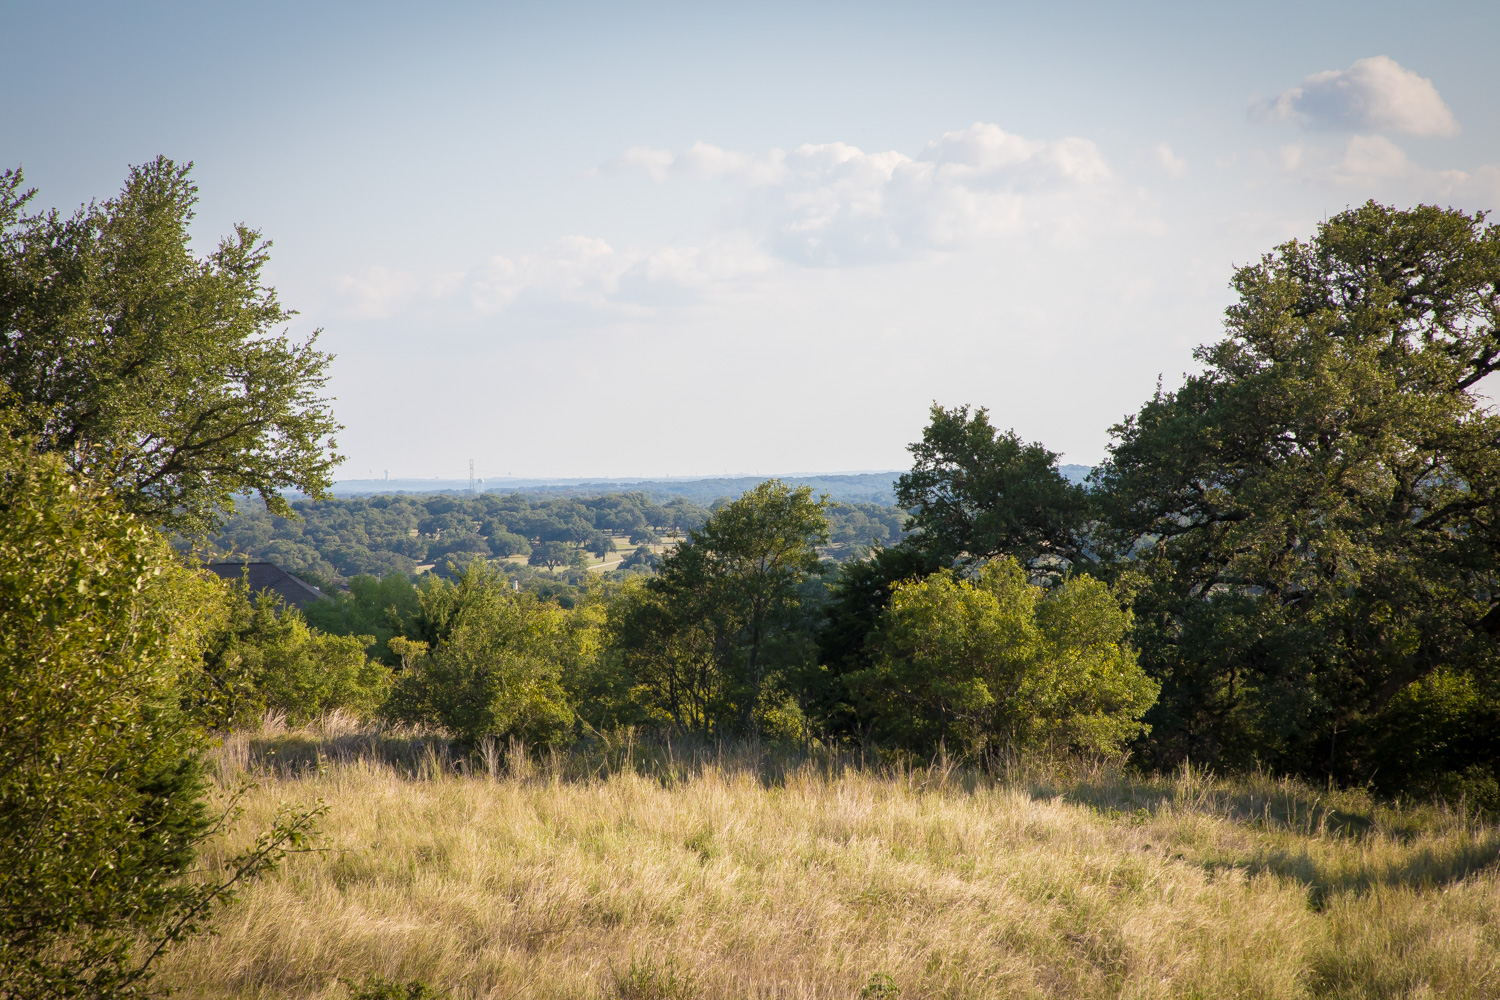 Land for Sale at Breathtaking Views in Provence Place at Vintage Oaks 1515 Grenache New Braunfels, Texas 78132 United States